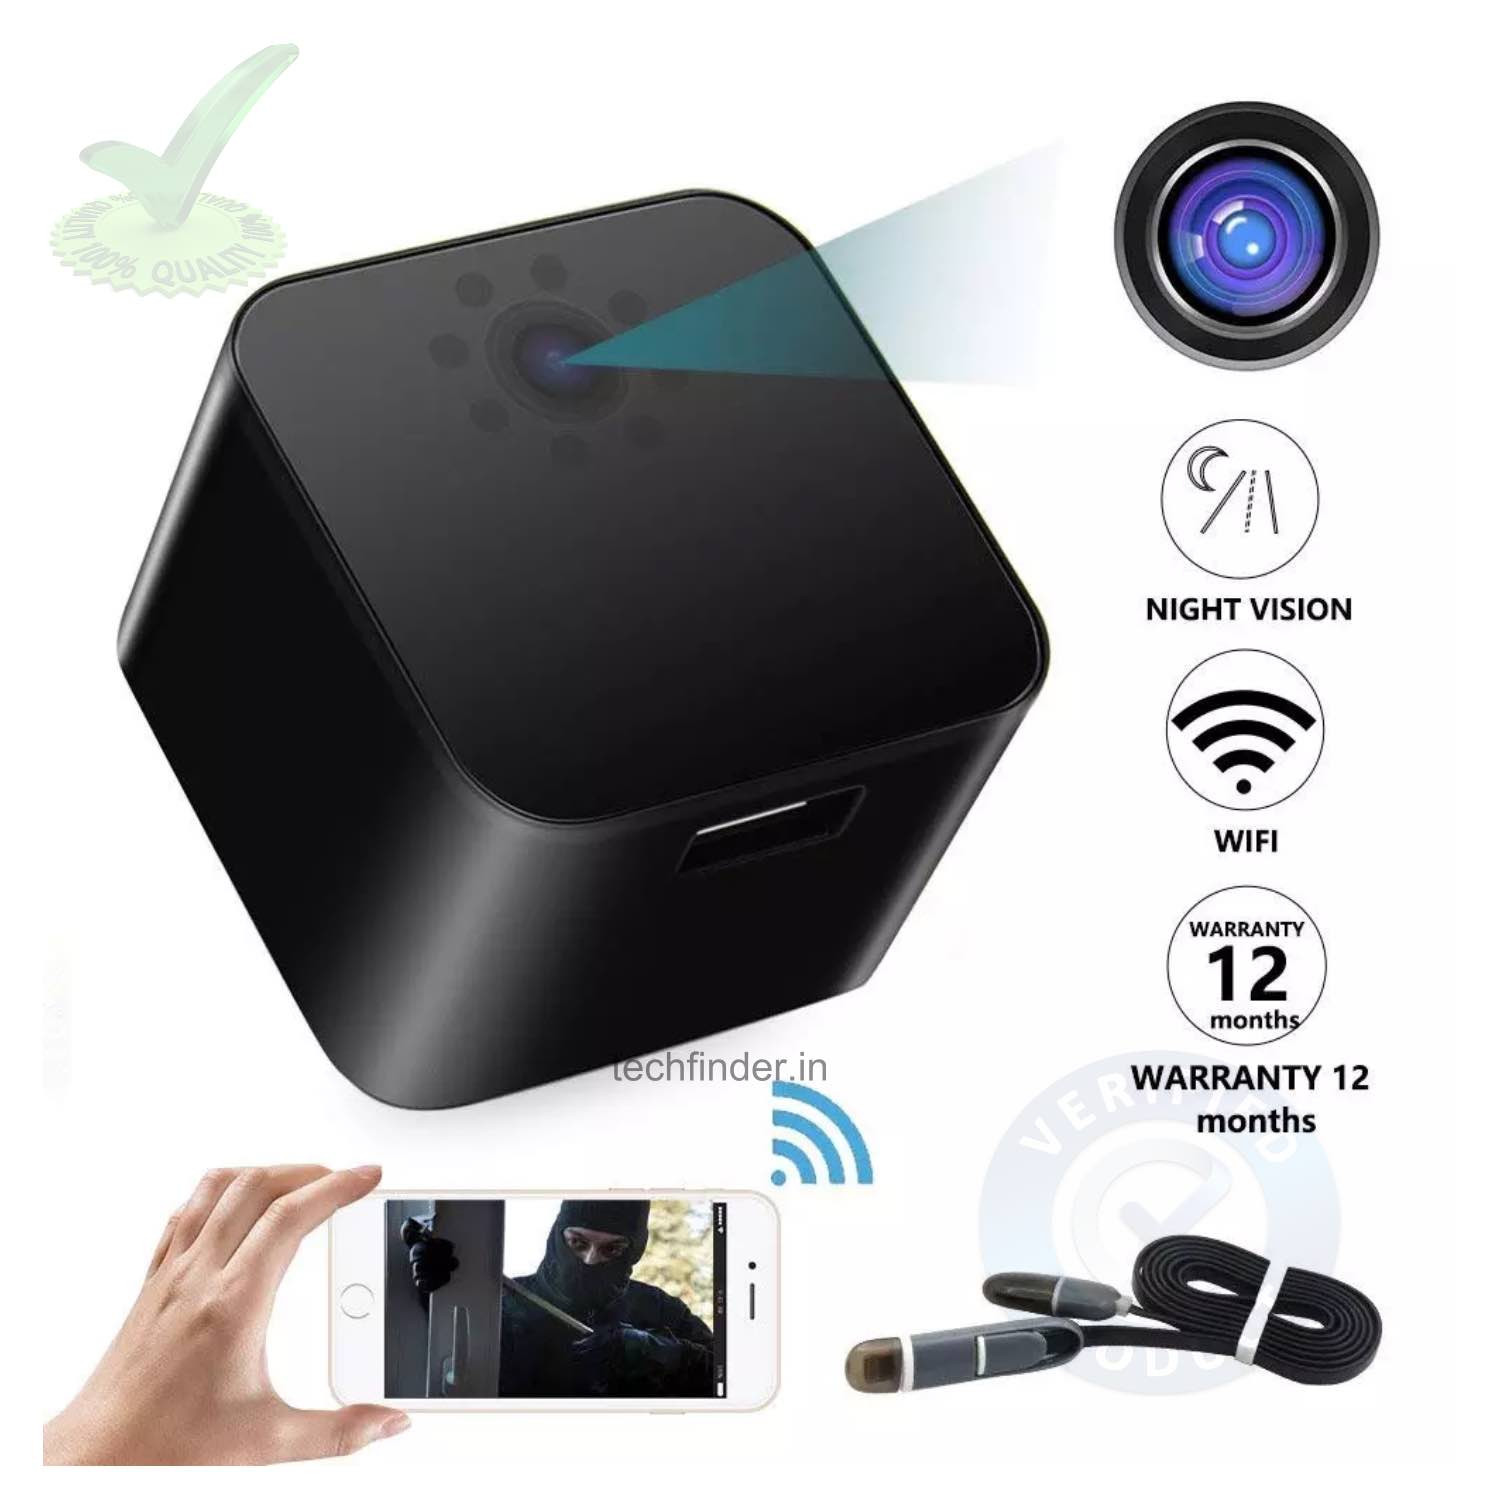 4k Wi-Fi Spy Hidden Camera with Recorder in USB Mobile Charger